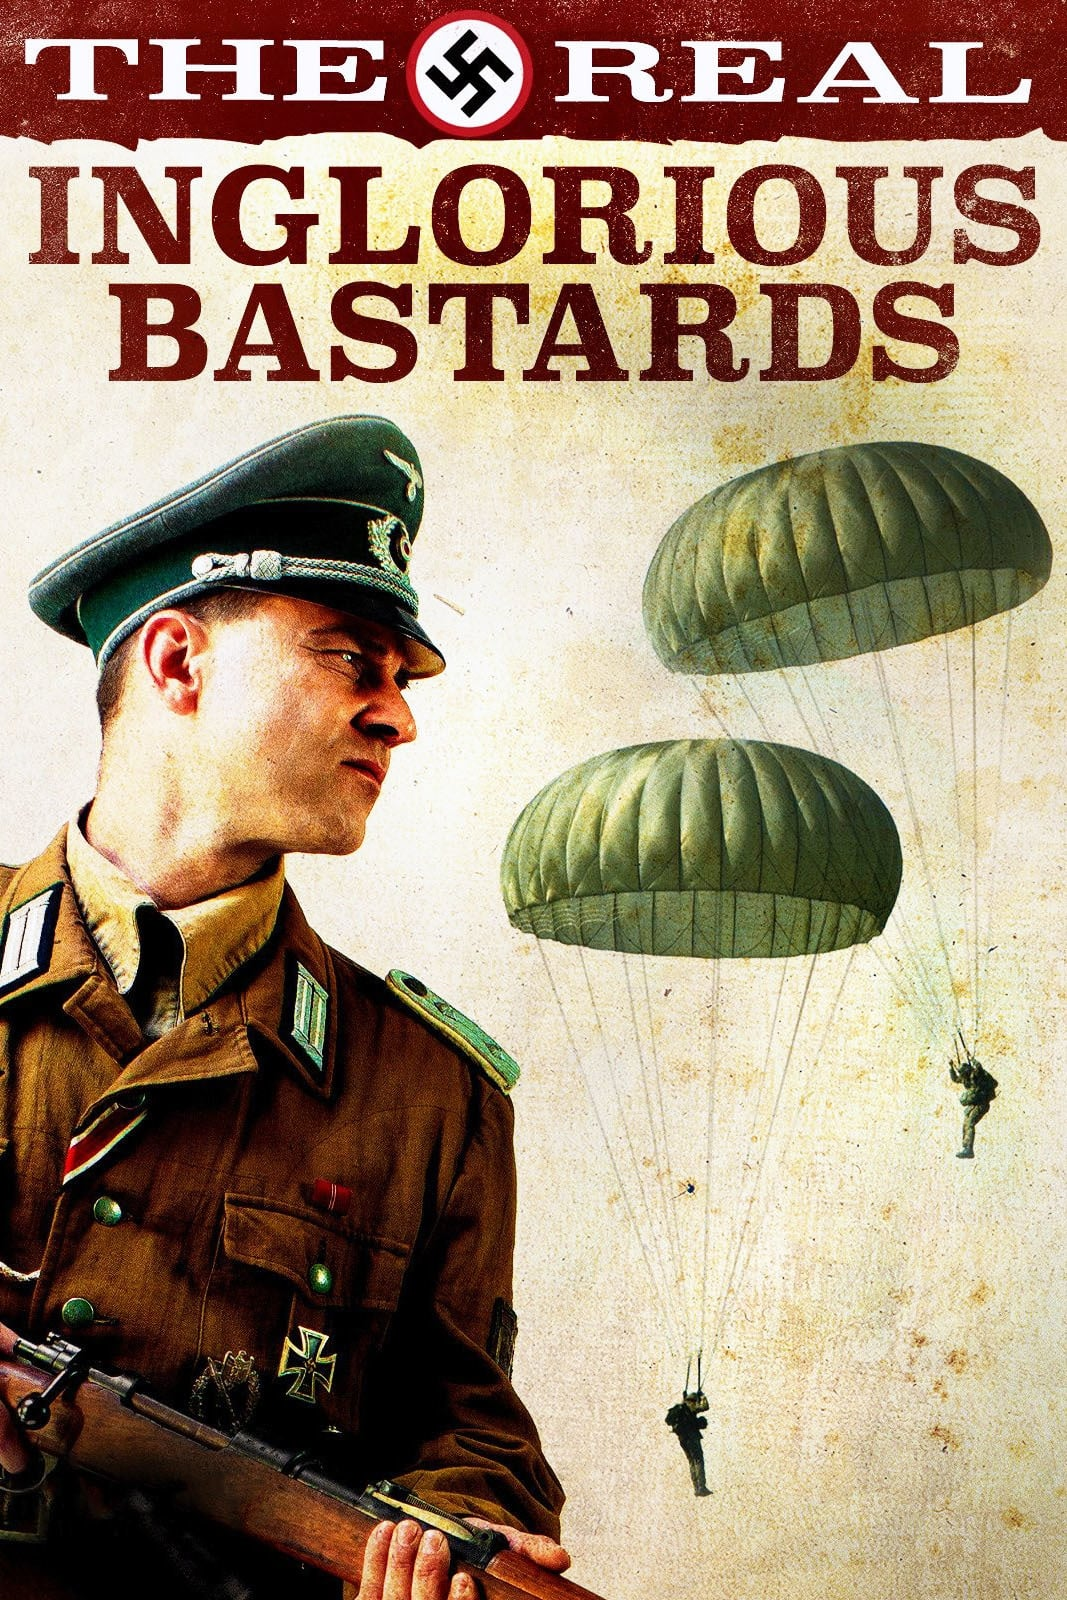 watch The Real Inglorious Bastards 2012 online free